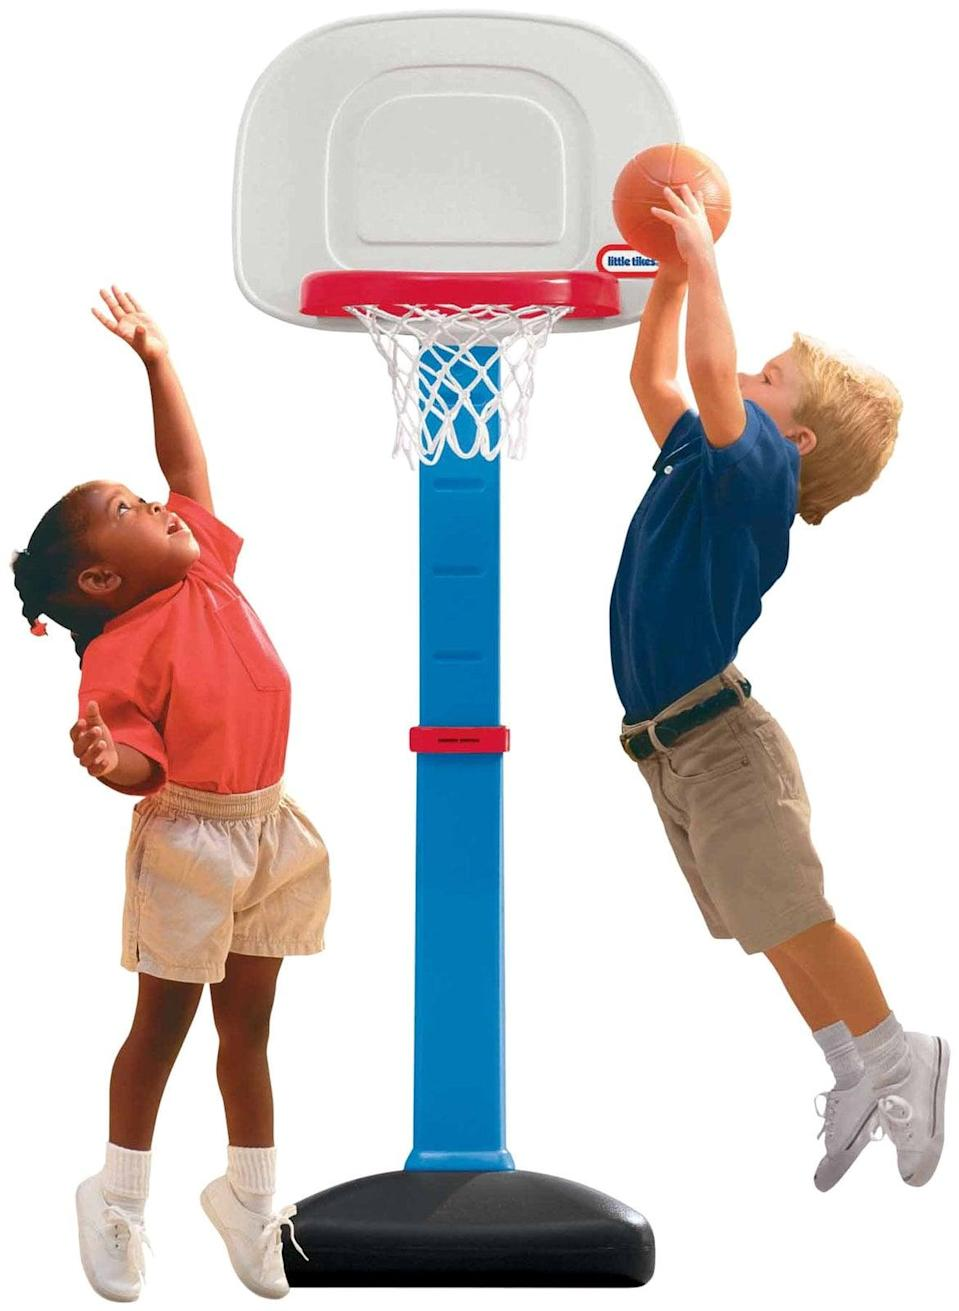 "<p>For a gift that packs a big punch without breaking the bank, Little Tikes's <a href=""https://www.popsugar.com/buy/Easy-Score-Basketball-Set-398623?p_name=Easy%20Score%20Basketball%20Set&retailer=walmart.com&pid=398623&price=30&evar1=moms%3Aus&evar9=25800161&evar98=https%3A%2F%2Fwww.popsugar.com%2Fphoto-gallery%2F25800161%2Fimage%2F36094708%2FLittle-Tikes-Easy-Score-Basketball-Set&list1=gifts%2Choliday%2Cgift%20guide%2Cparenting%2Ctoddlers%2Clittle%20kids%2Ckid%20shopping%2Choliday%20living%2Choliday%20for%20kids%2Cgifts%20for%20toddlers%2Cbest%20of%202019&prop13=api&pdata=1"" class=""link rapid-noclick-resp"" rel=""nofollow noopener"" target=""_blank"" data-ylk=""slk:Easy Score Basketball Set"">Easy Score Basketball Set</a> ($30) can't be beat. The hoop's height is adjustable, so those games of H-O-R-S-E can become more challenging as they get older.</p>"